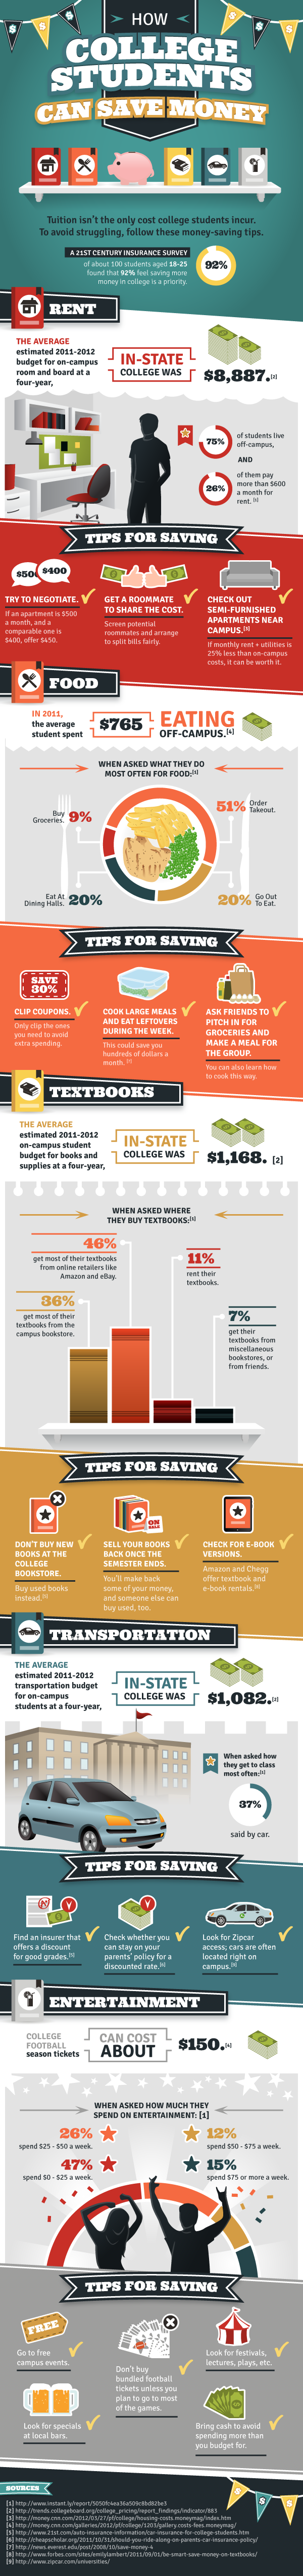 The How College Students Can Save Money Infographic Shows What The